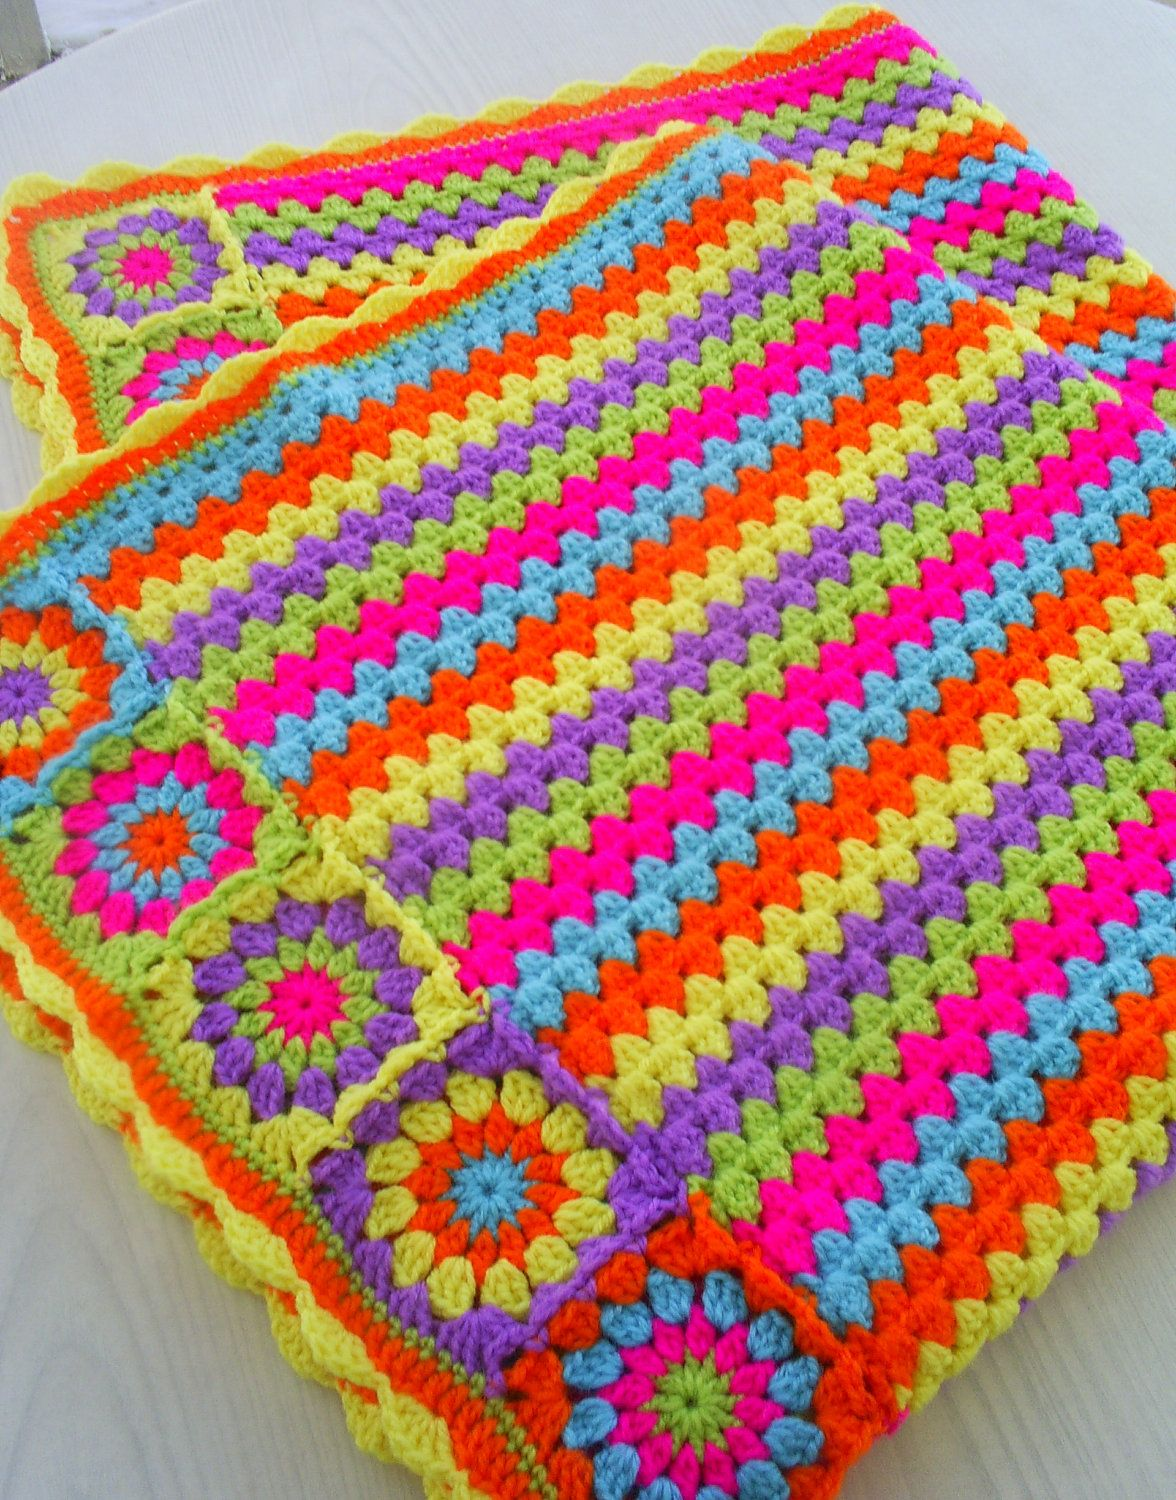 the granny stripes and squares colorful blanket  blanket squares  - the granny stripes and squares colorful blanket